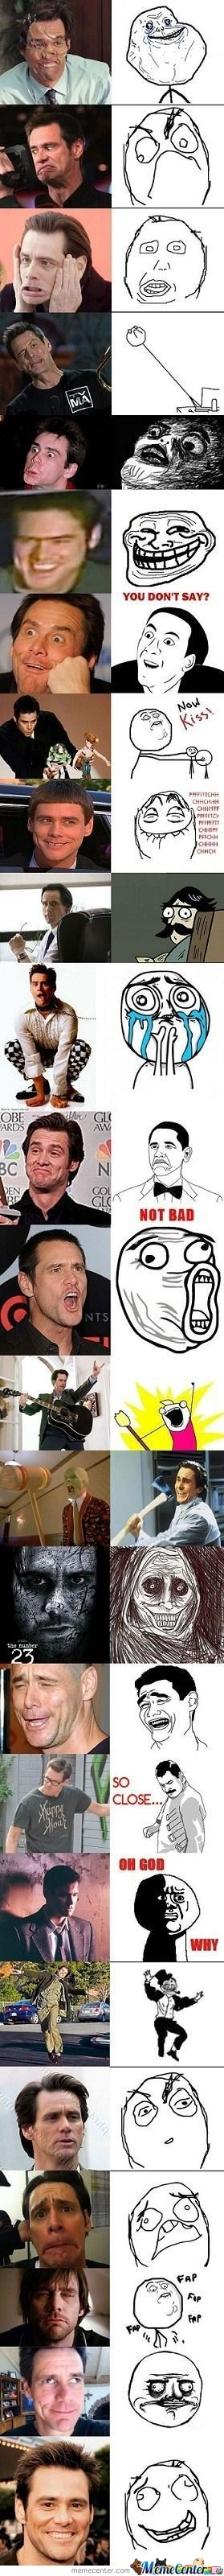 Jim Carrey'S Career